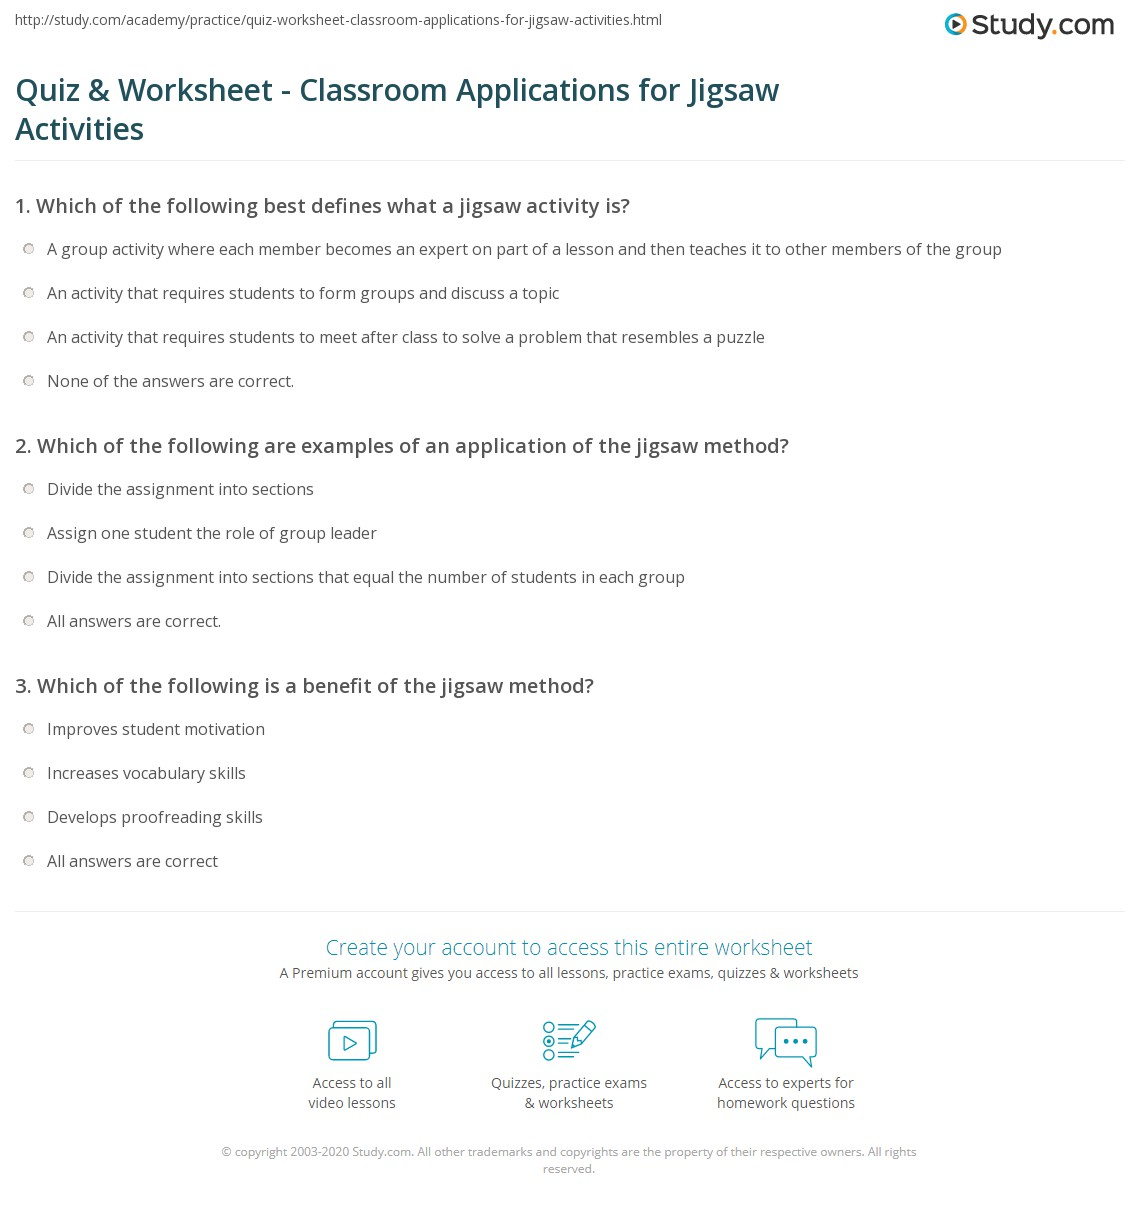 worksheet Jigsaw Reading Activities Worksheets quiz worksheet classroom applications for jigsaw activities print examples worksheet